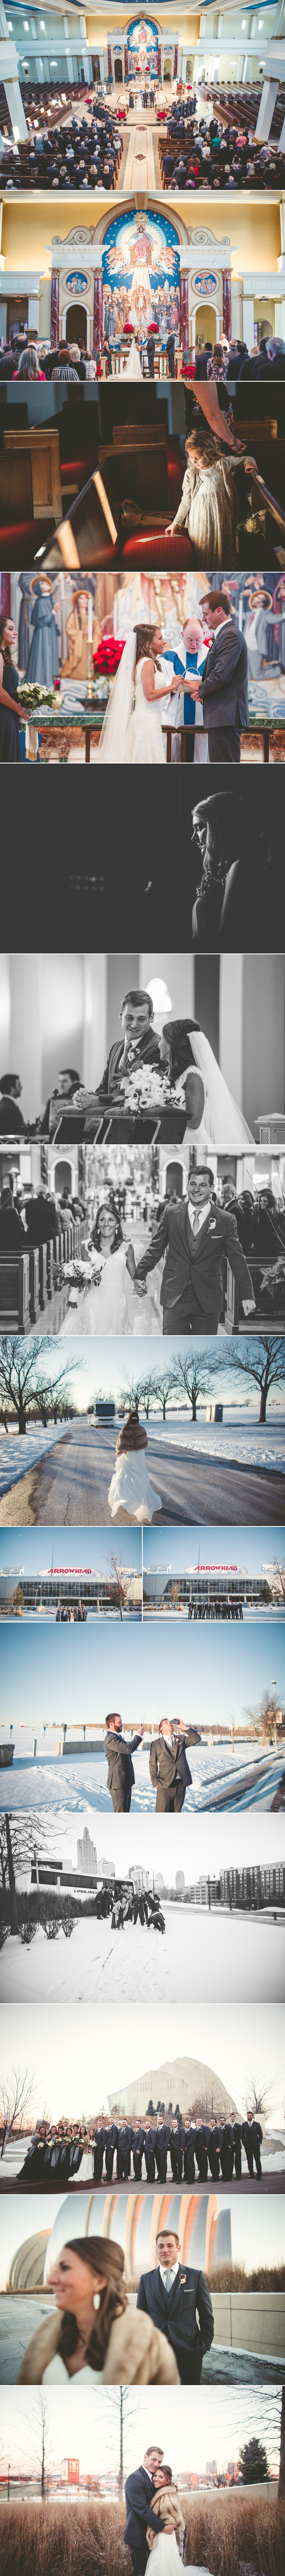 jason_domingues_photography_best_kansas_city_photographer_kc_wedding_weddings_winter0002.jpg